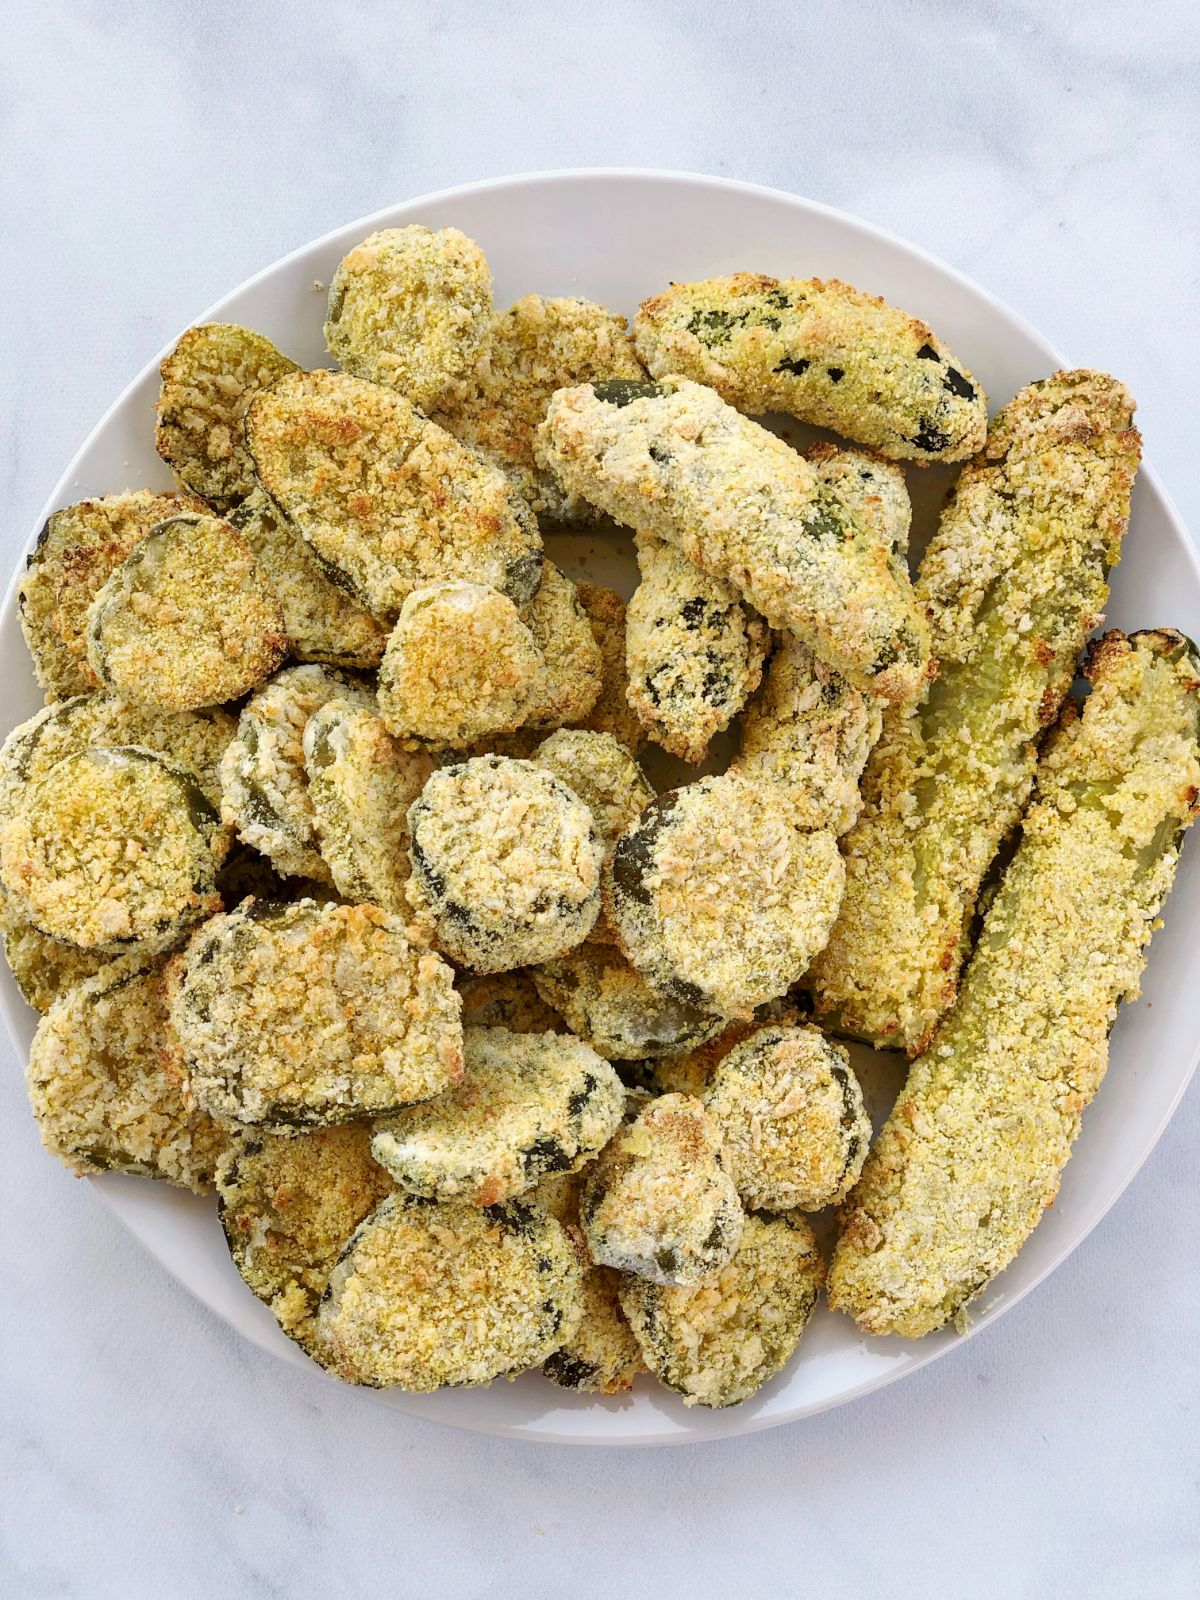 a top view of a plate of fried pickles